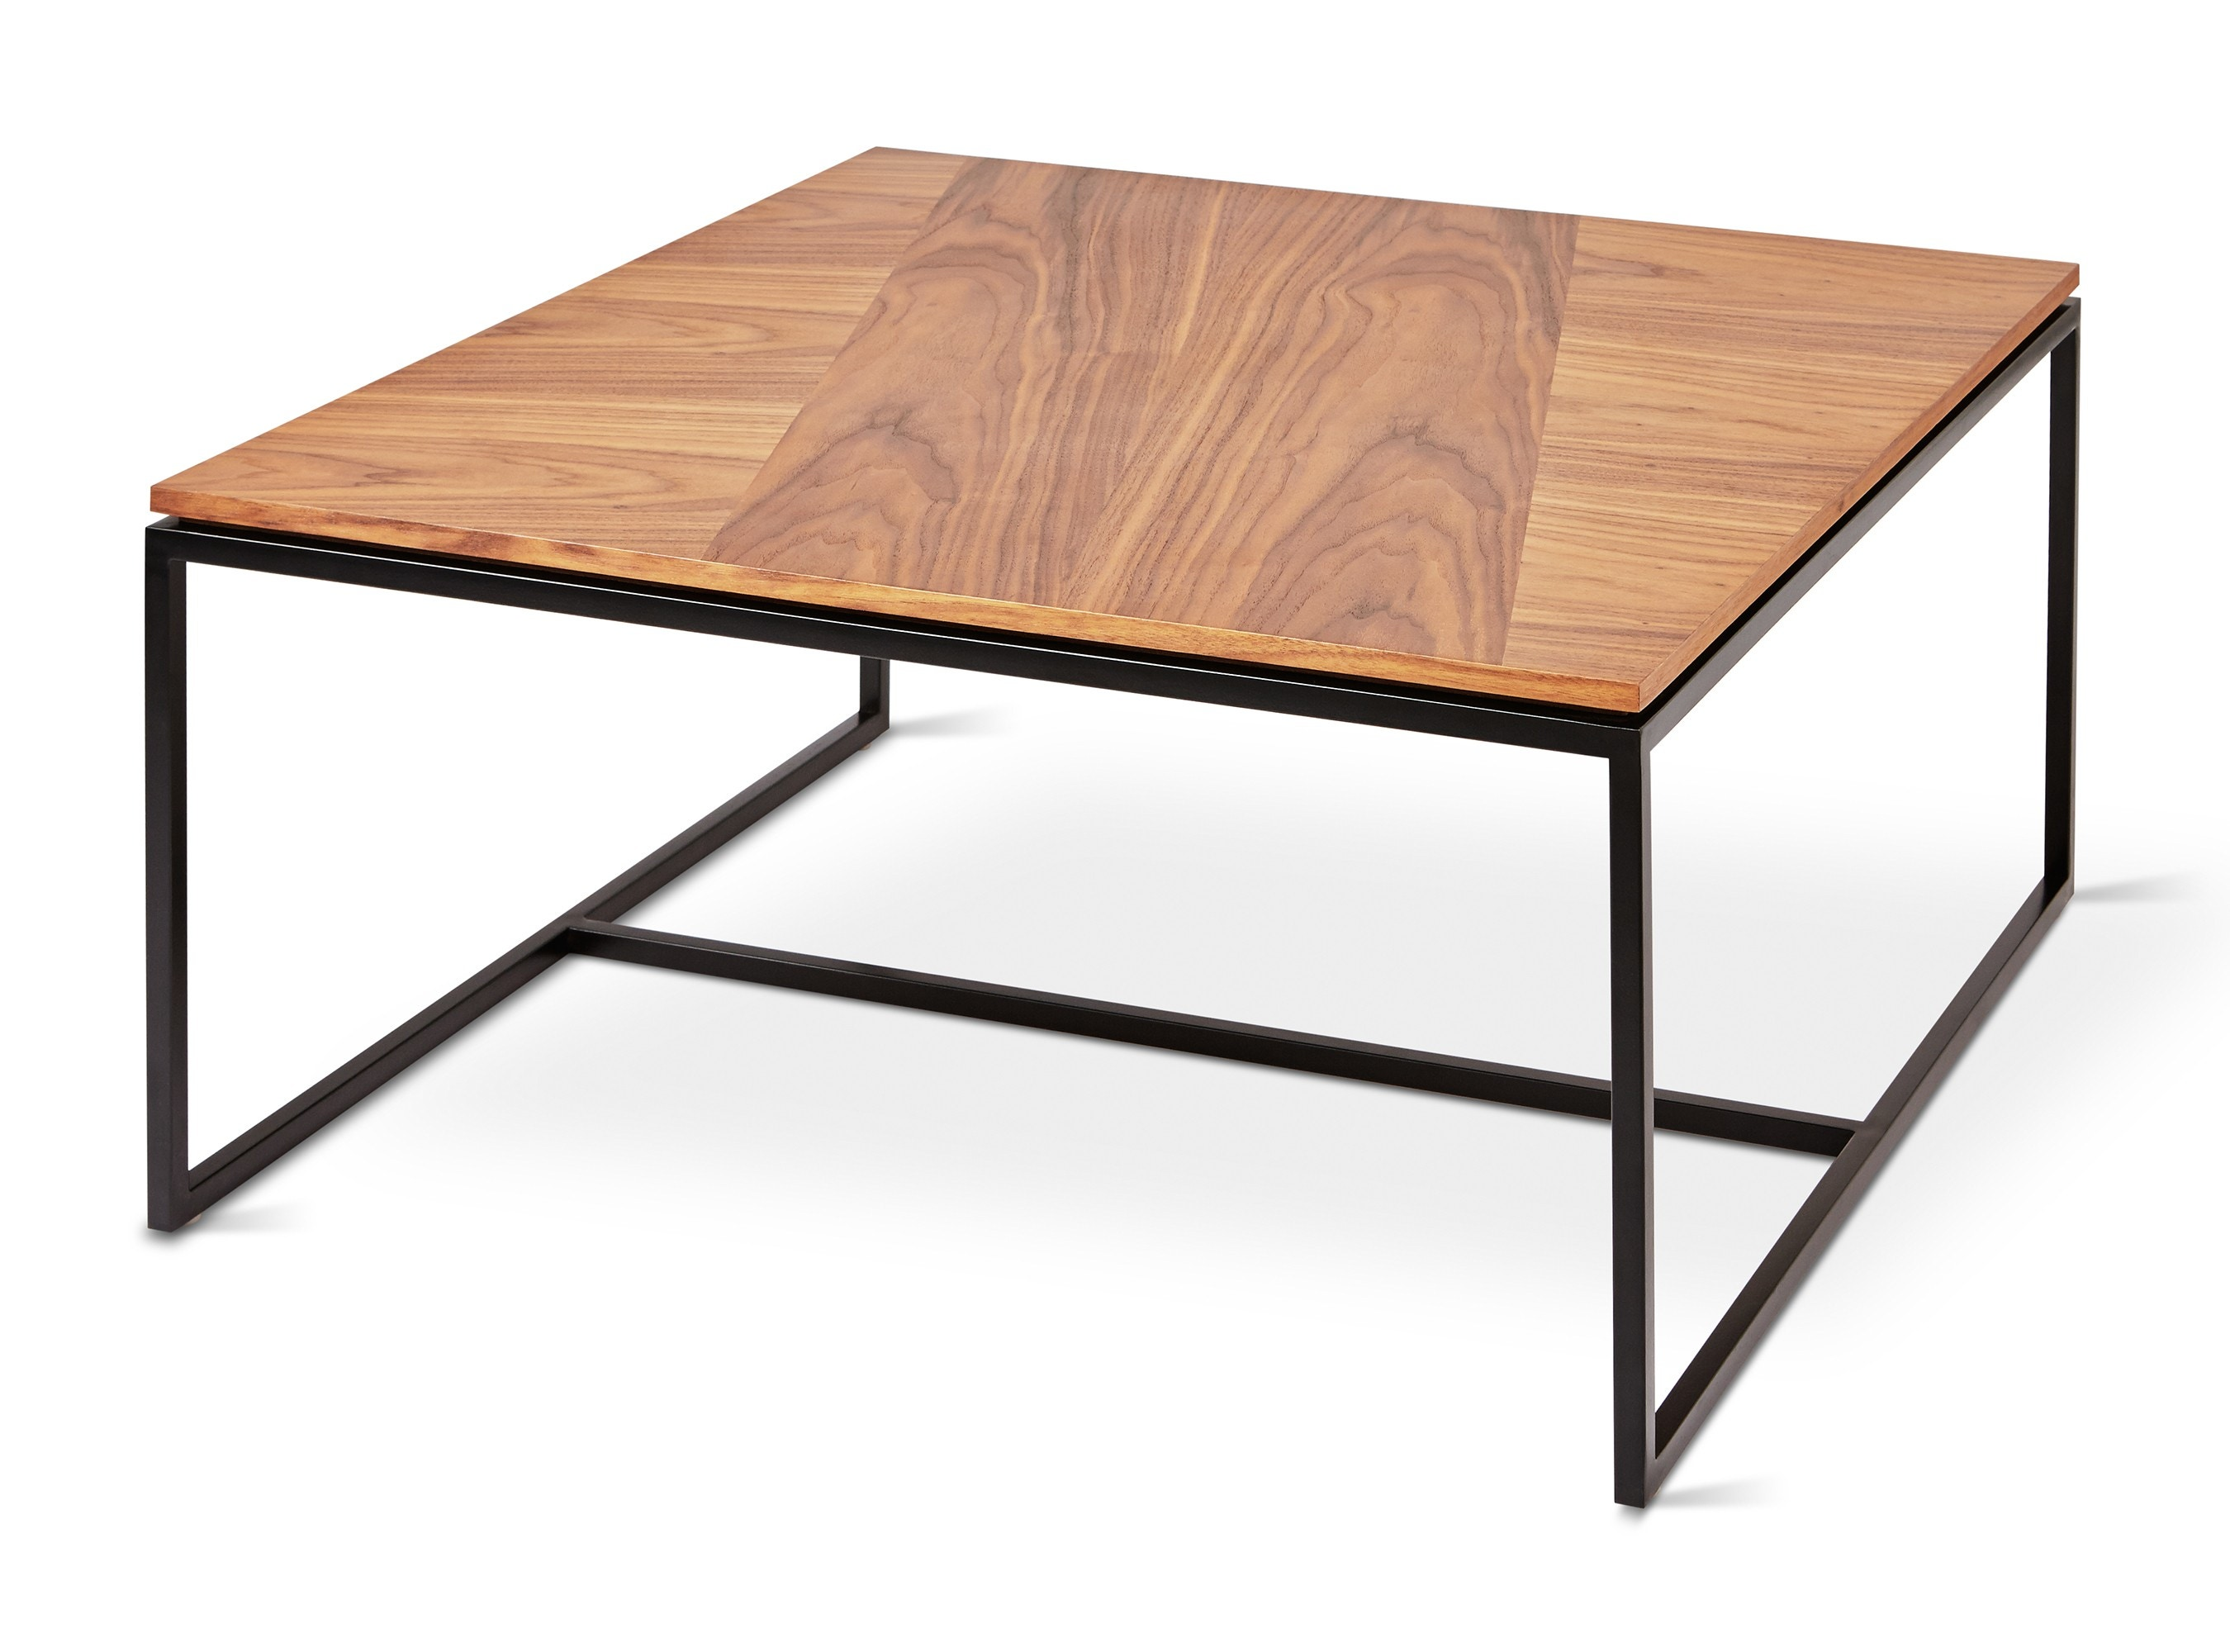 Gus* Modern Tobias Coffee Table – Square